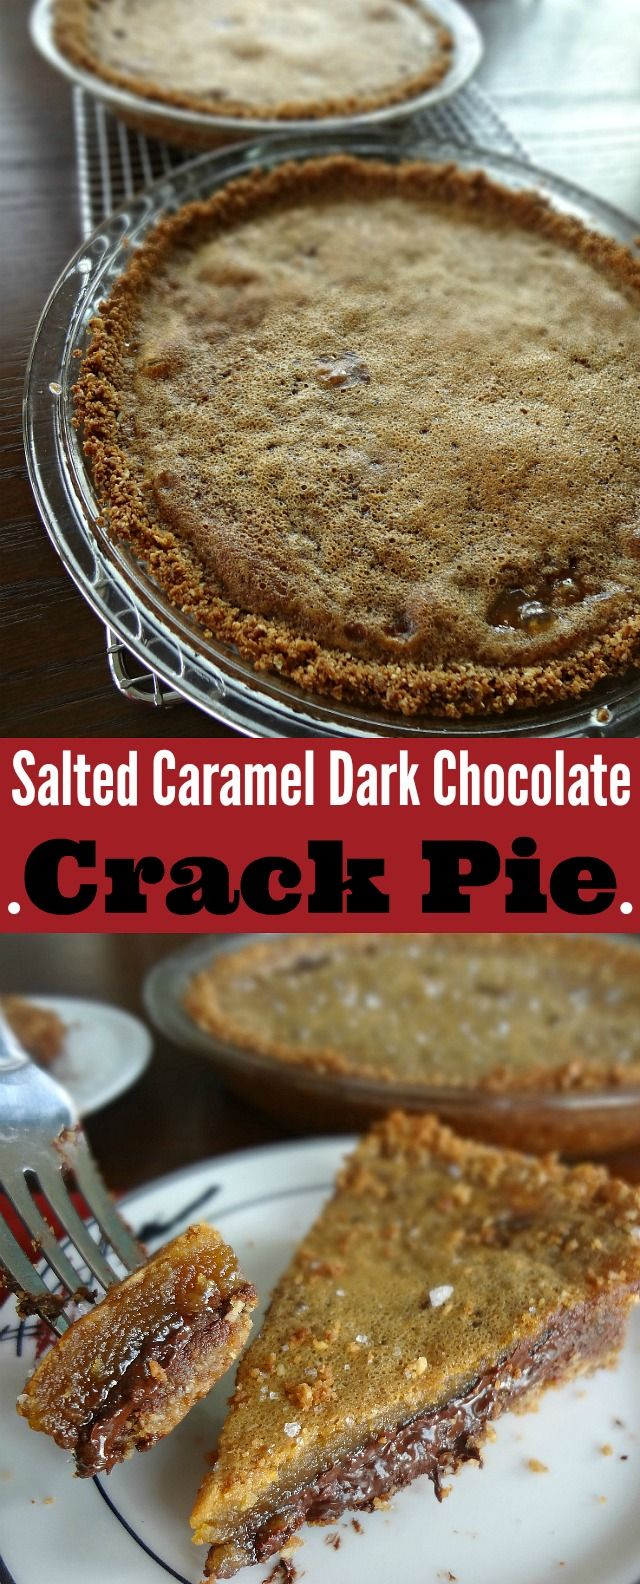 "Salted Caramel Dark Chocolate Crack Pie. A completely rich and decadent dessert-with an oatmeal cookie crust, dark chocolate layer, and salted caramel ""crack pie"" filling."